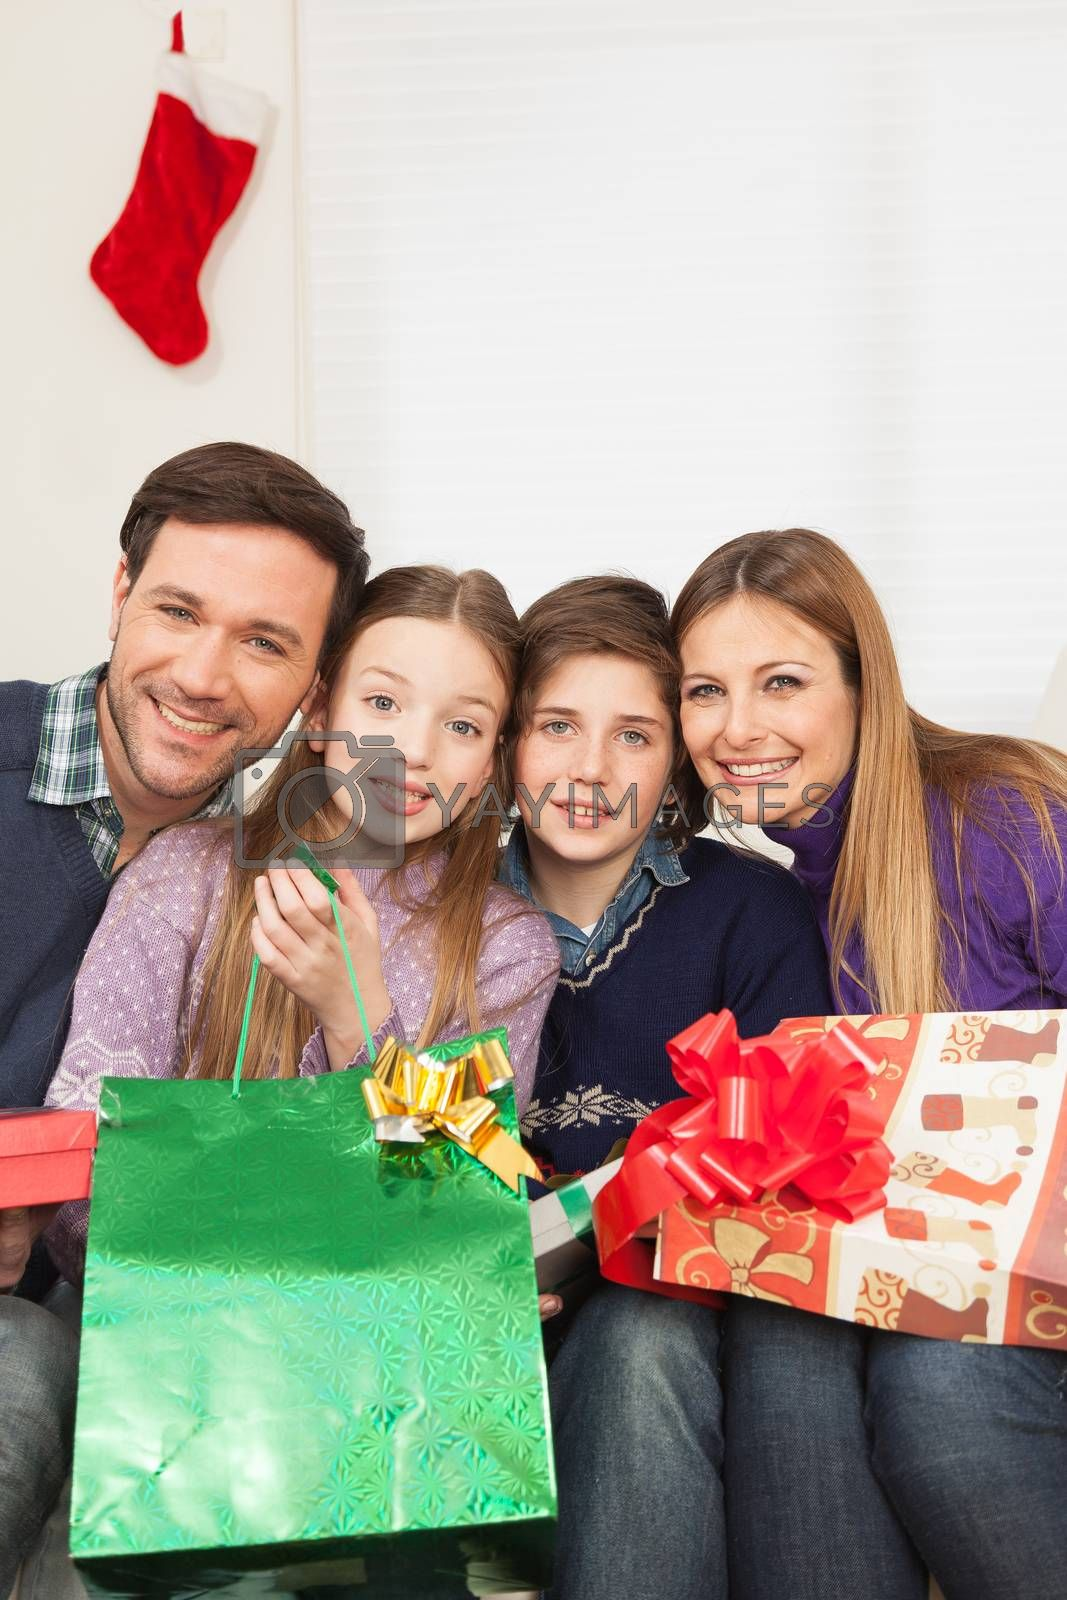 10-12, 30-35, 8-10, adorable, affection, background, beautiful, beauty, boy, camera, care, casual, caucasian, celebration, child, children, christmas, couch, cute, daughter, decoration, face, family, father, front, fun, gift, girl, golden, green, happiness, happy, holidays, home, vertical, joy, kid, laughing, little, look, looking, love, male, man, model, mom, mother, old, one, people, person, portrait, property, red, releases, ribbon, sitting, small, smile, smiling, sofa, son, together, white, woman, years, young